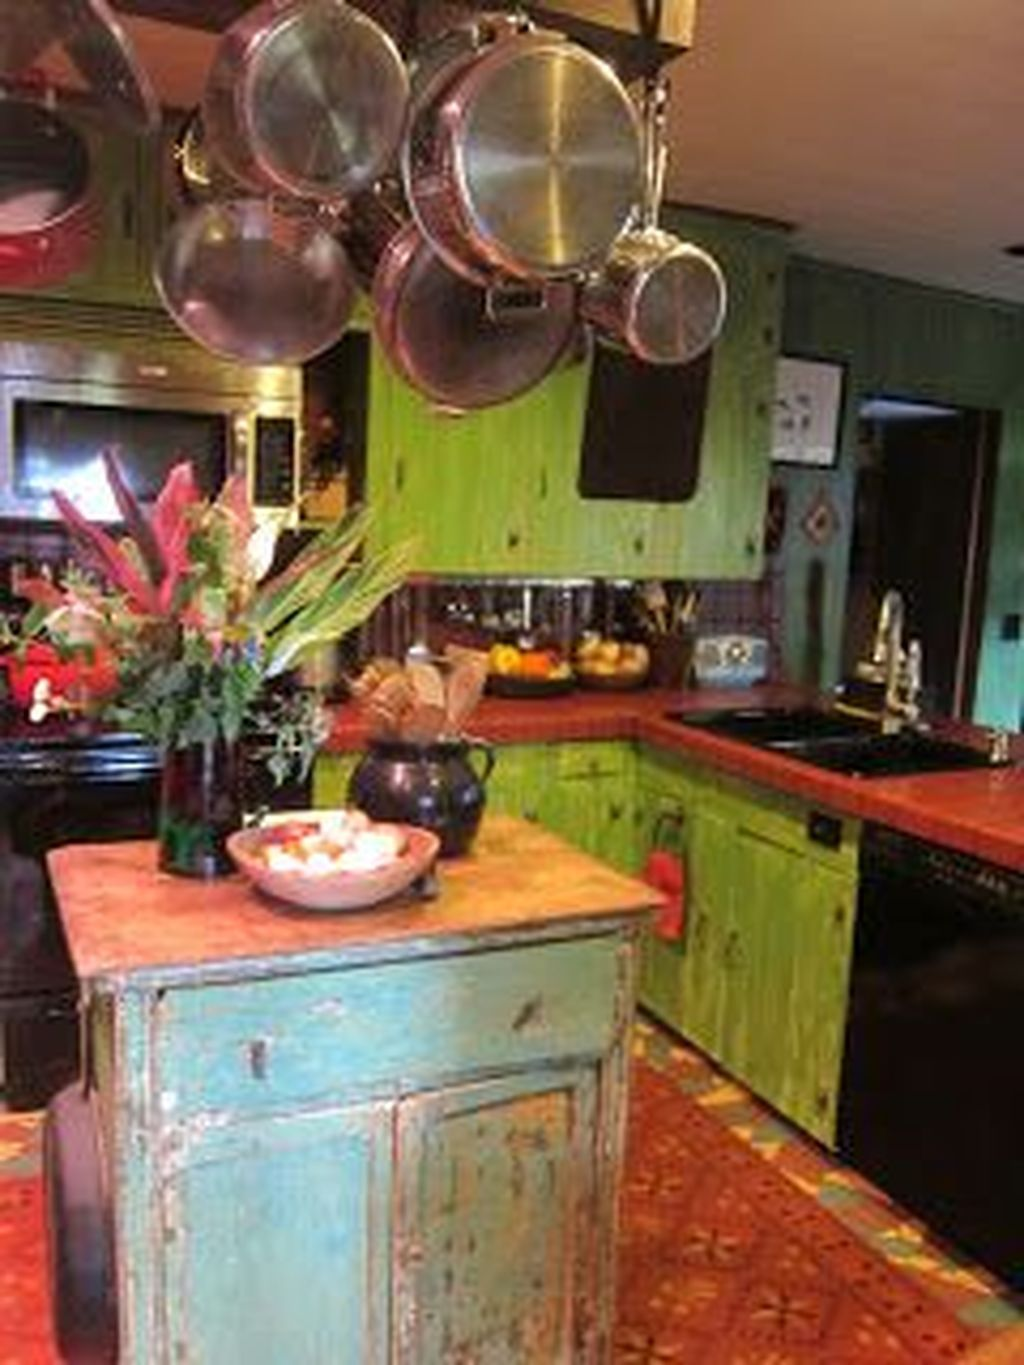 pin by trend4homy on kitchen design ideas in 2019 bohemian kitchen boho kitchen rustic kitchen on boho chic home decor kitchen id=37198